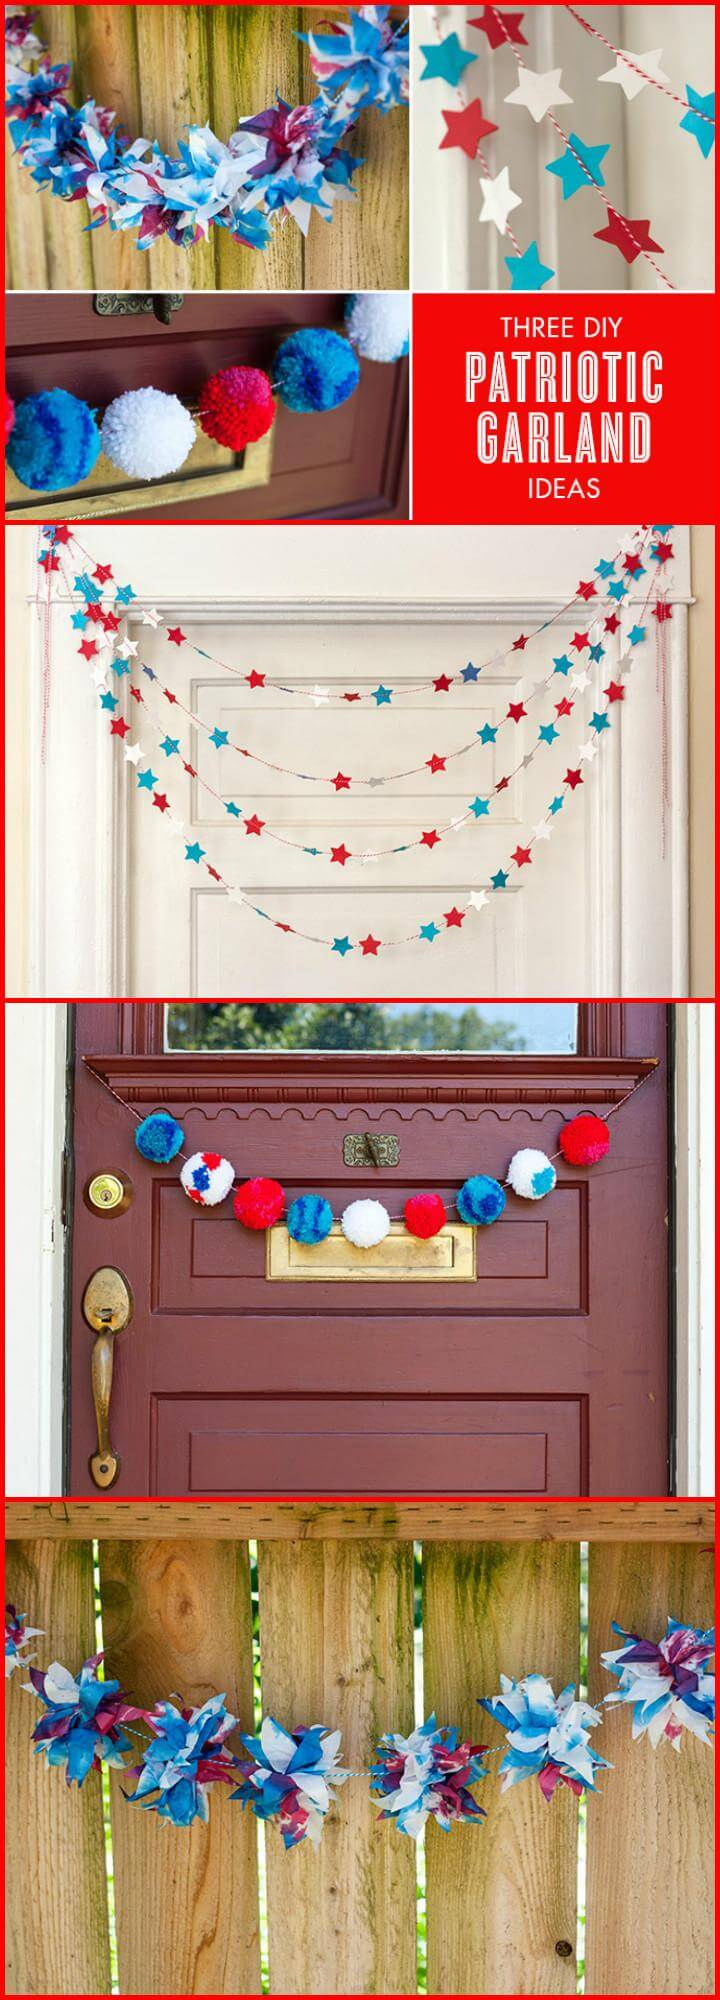 33 DIY 3 Patriotic Garlands